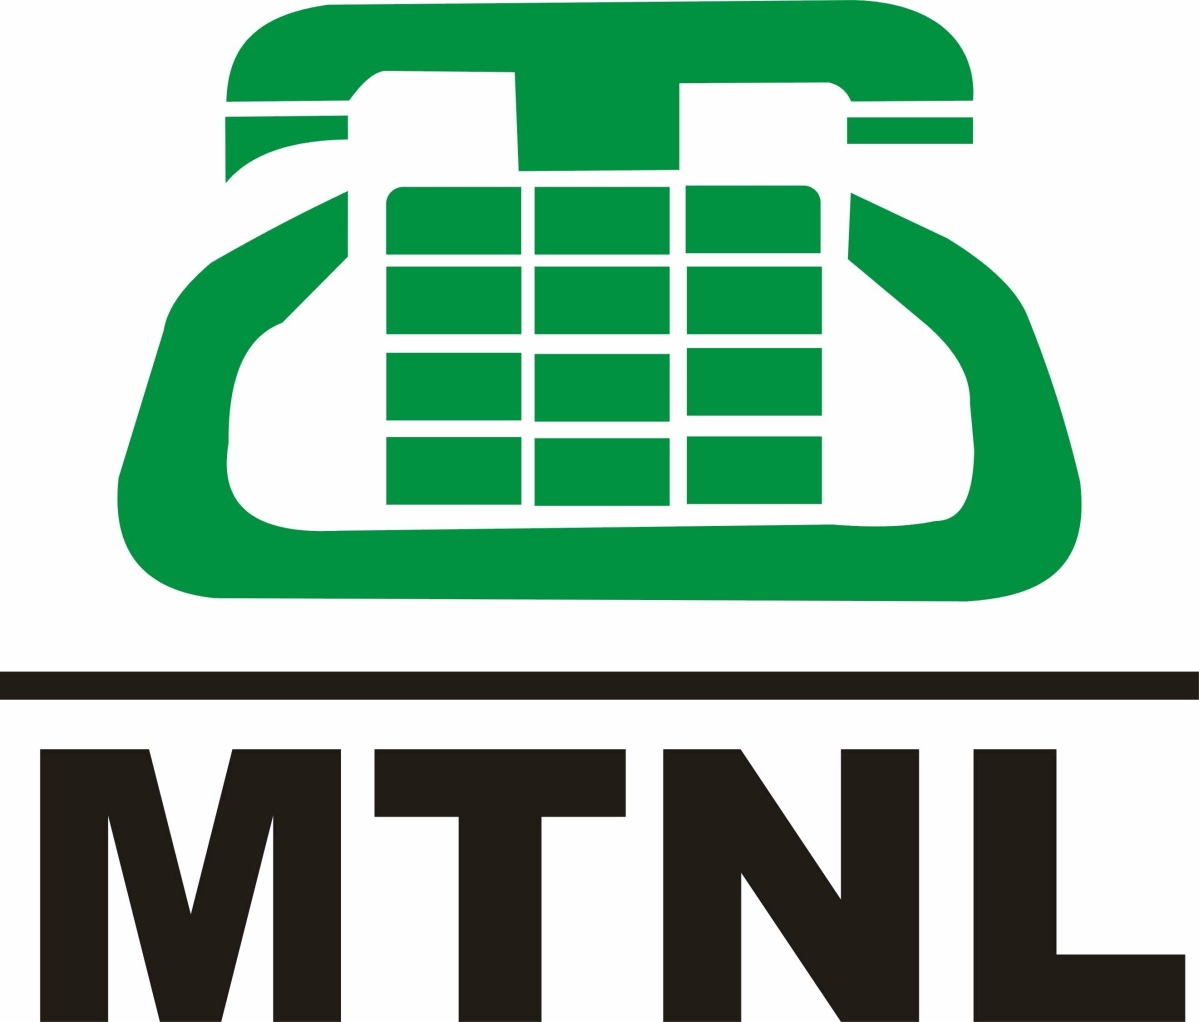 VRS package may save Rs 1,080 cr annual salary: MTNL chief